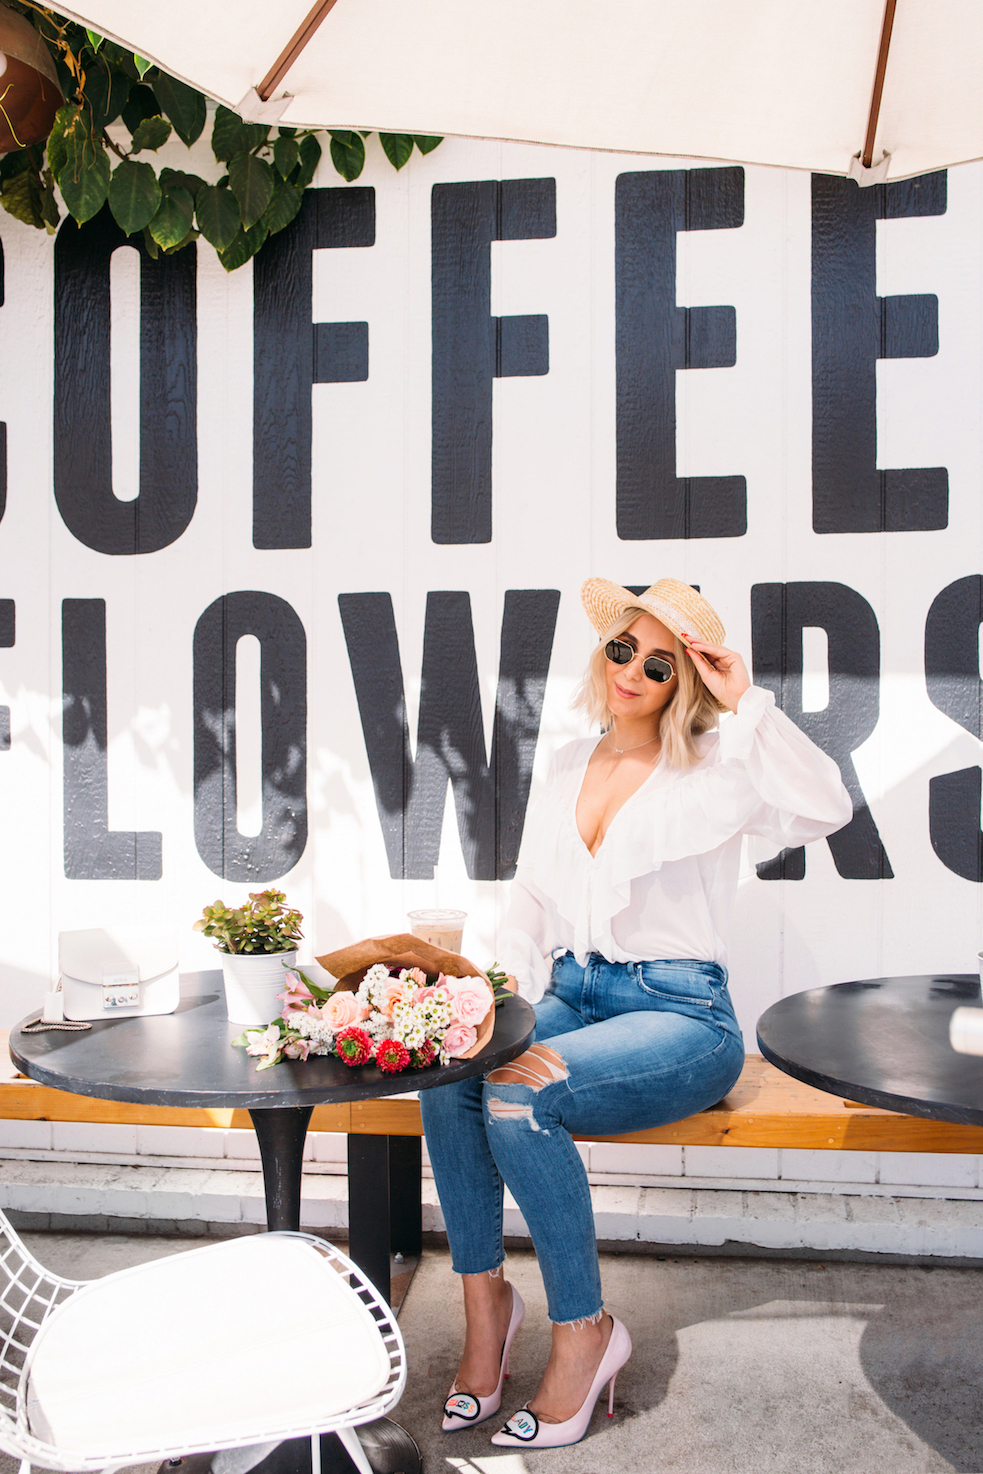 Coffee-Flowers-Cafe-San-Diego.jpg